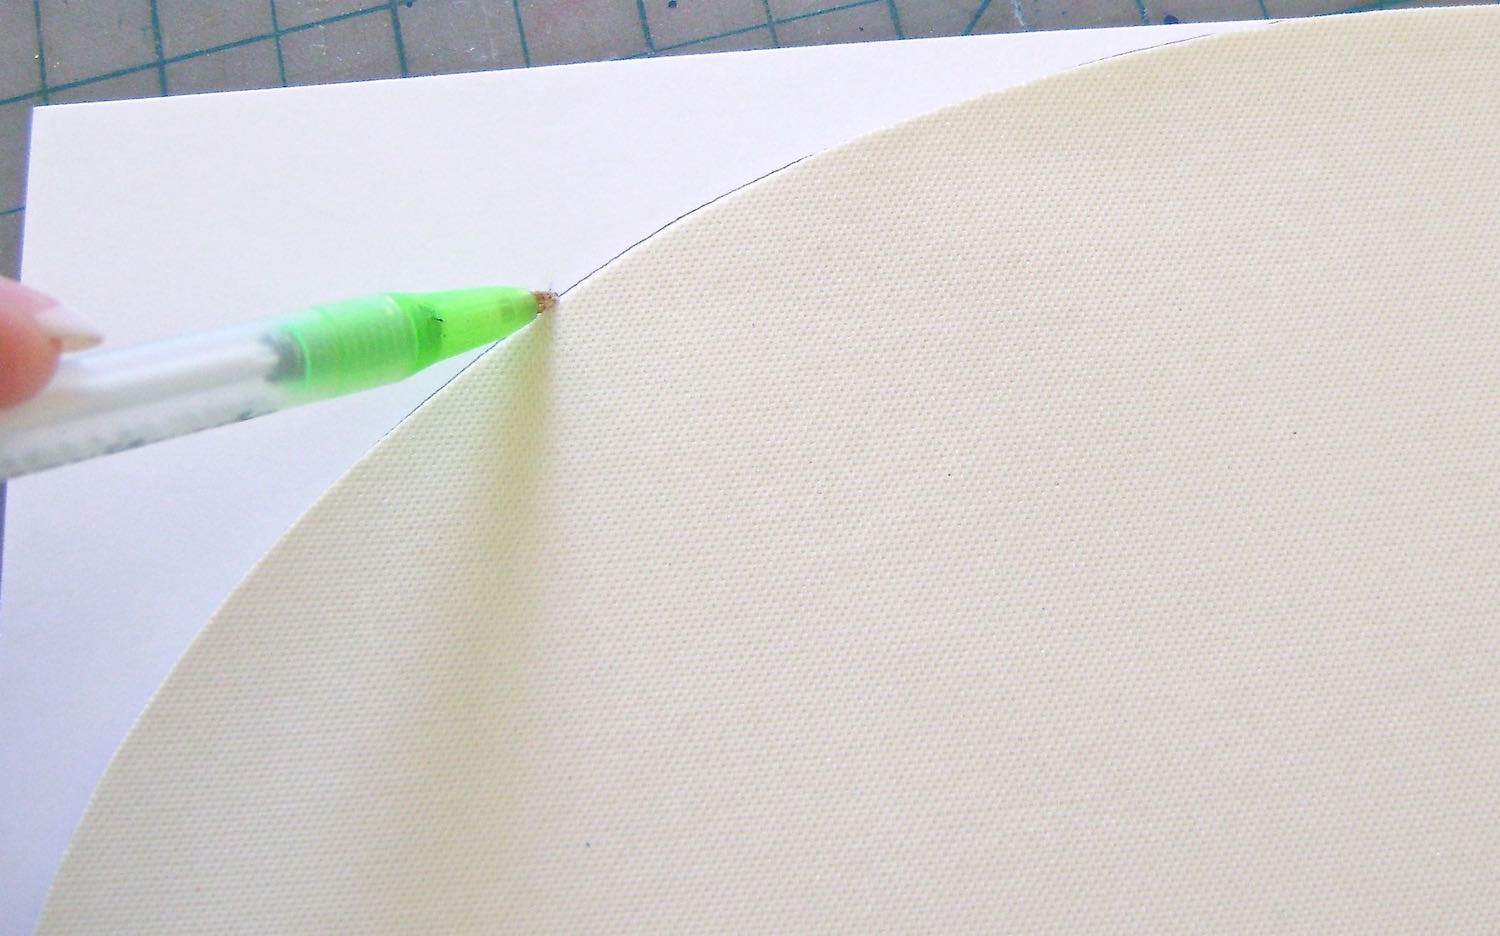 step 6 - Place the cut mat on pieced-together card stock.  Trace the curved edges of the mat to create a template.